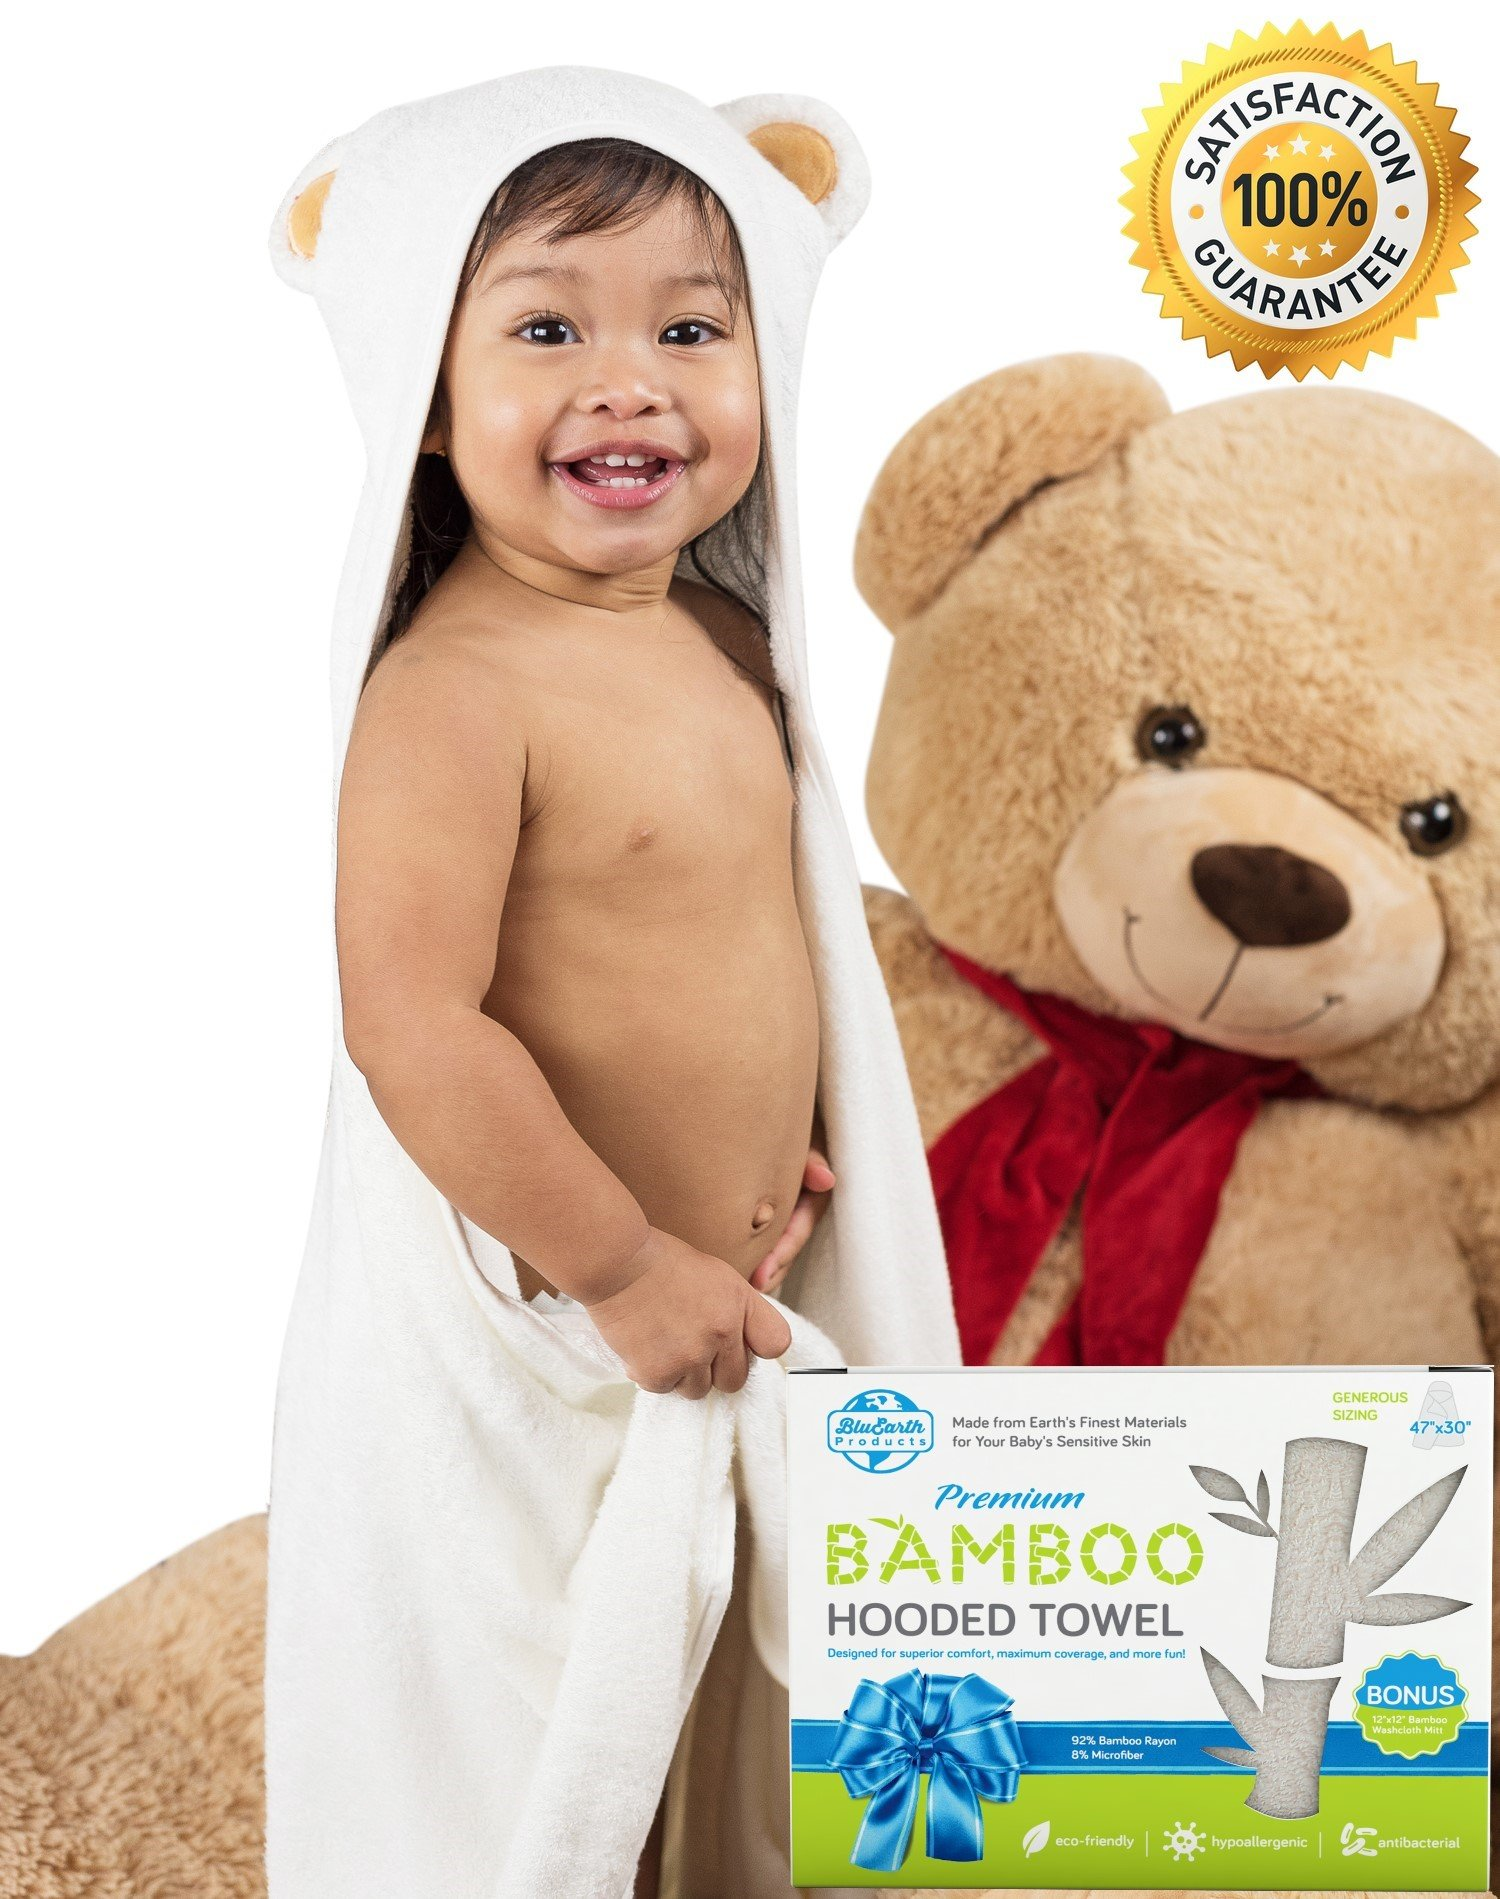 BluEarth Products Animal Baby Hooded Towel for Girls and Boys | Little Bear | Bamboo Hooded Baby Towel and Baby Washcloth | Baby Travel Bathing Kit | Baby Gifts for Newborn, Infant, Toddler, Big Kids